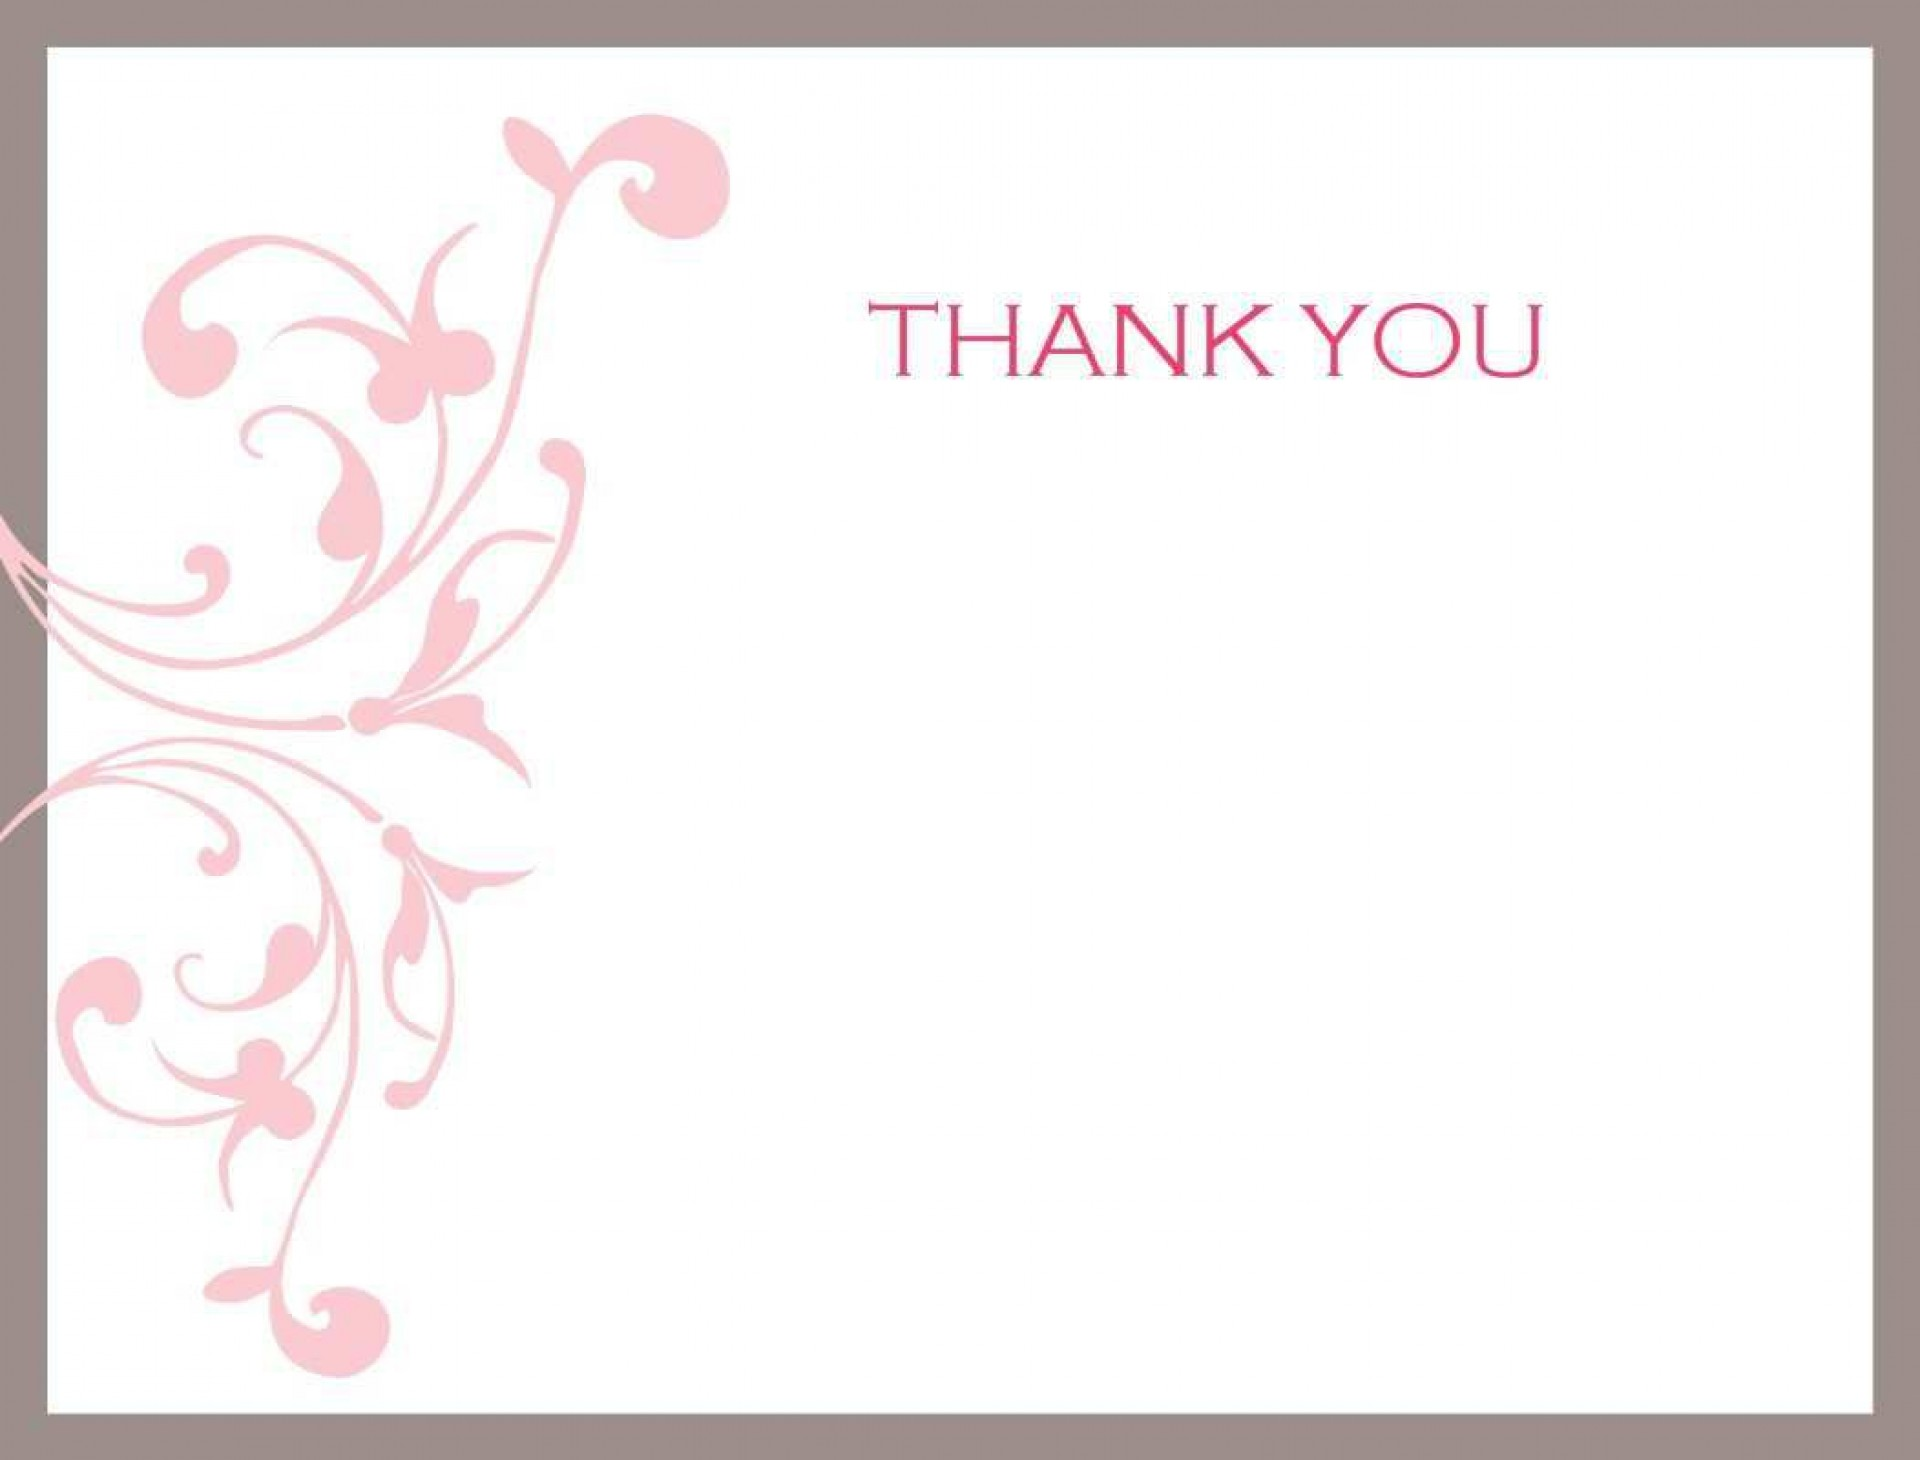 004 Unusual Thank You Note Template Free Printable Concept 1920